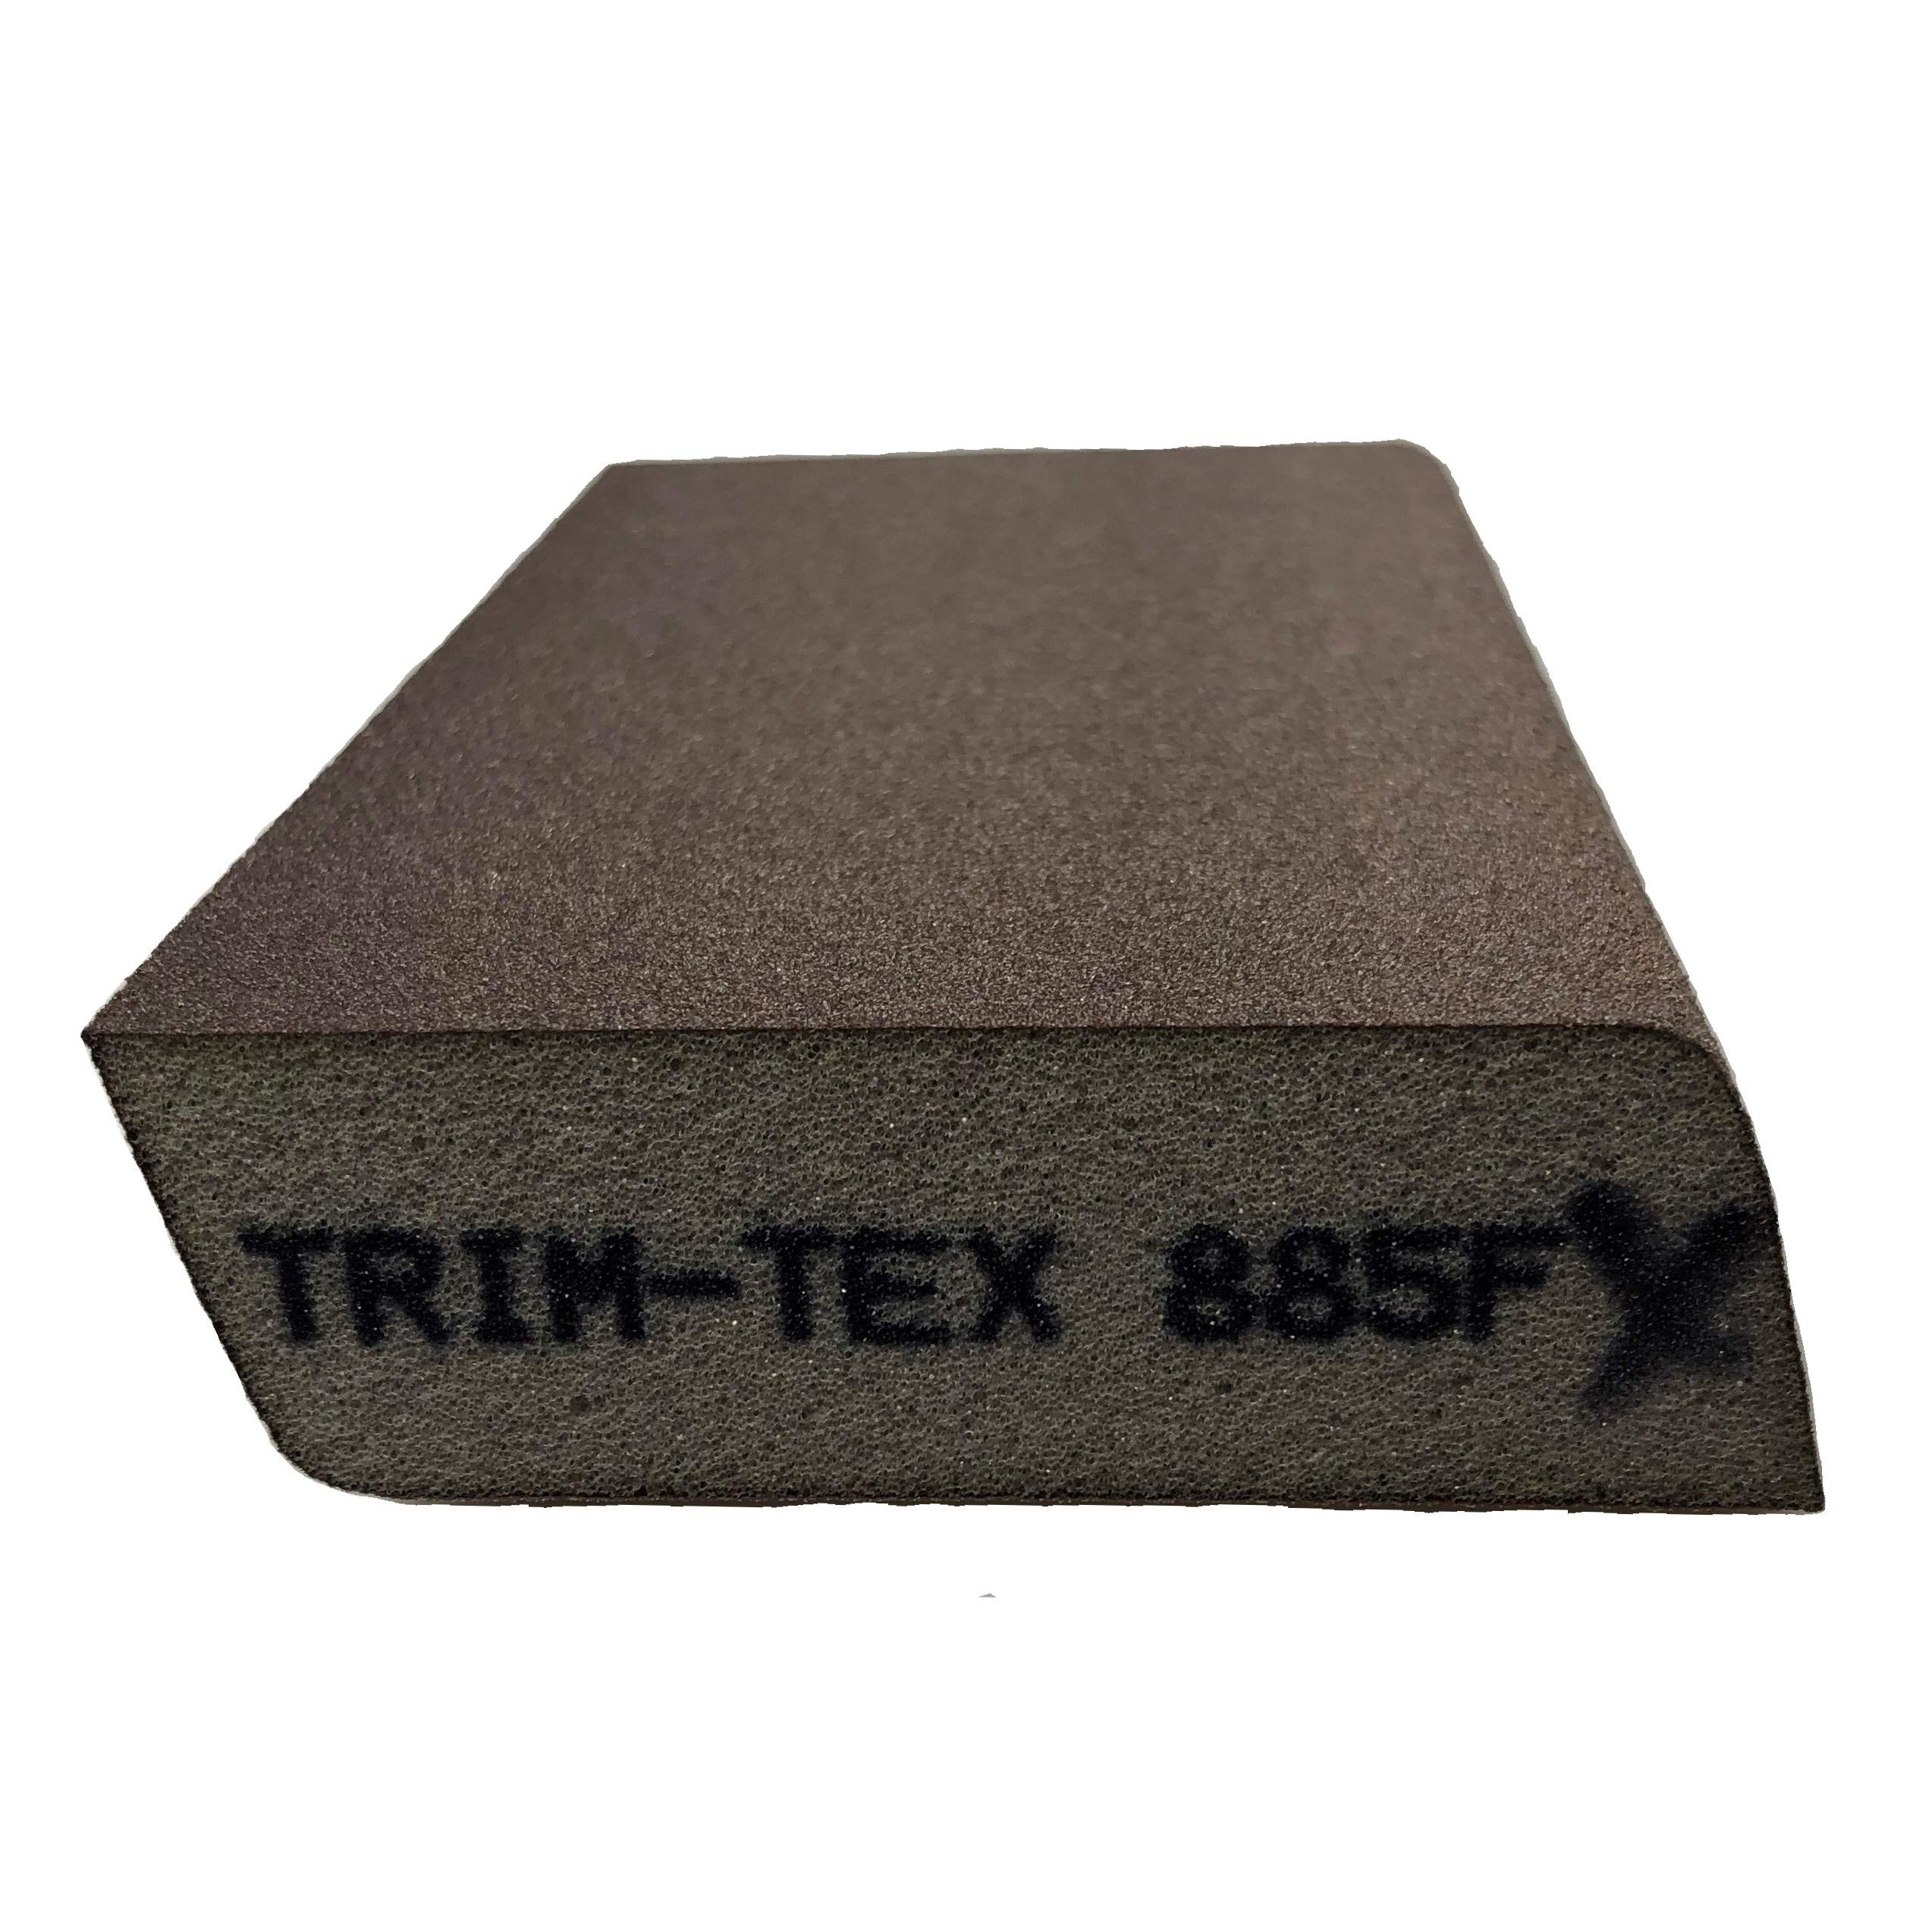 Dual Angle Sanding Block Extra Fine Grit (Box of 24)